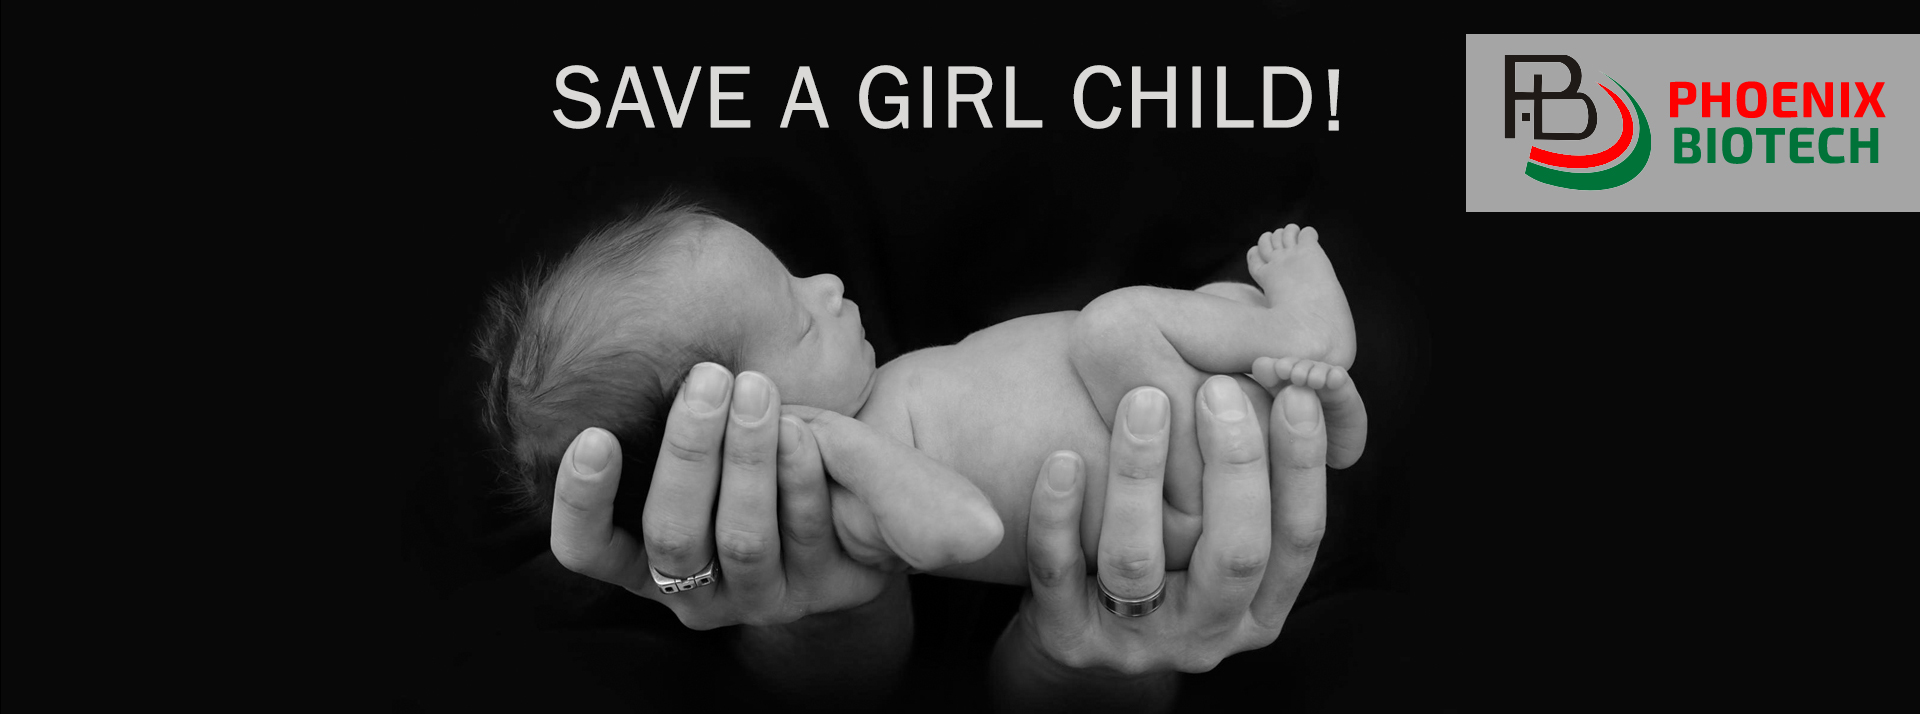 save-a-girl-child